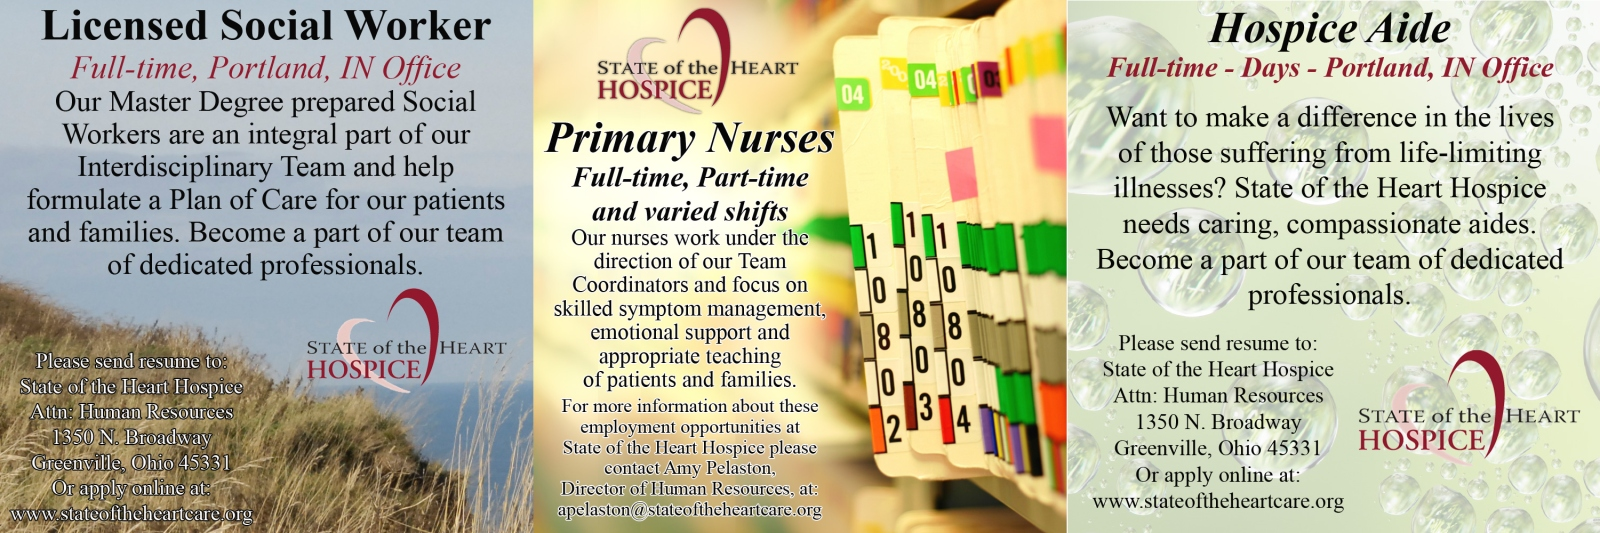 DarkeJournal com: Help Wanted at State of the Heart Hospice